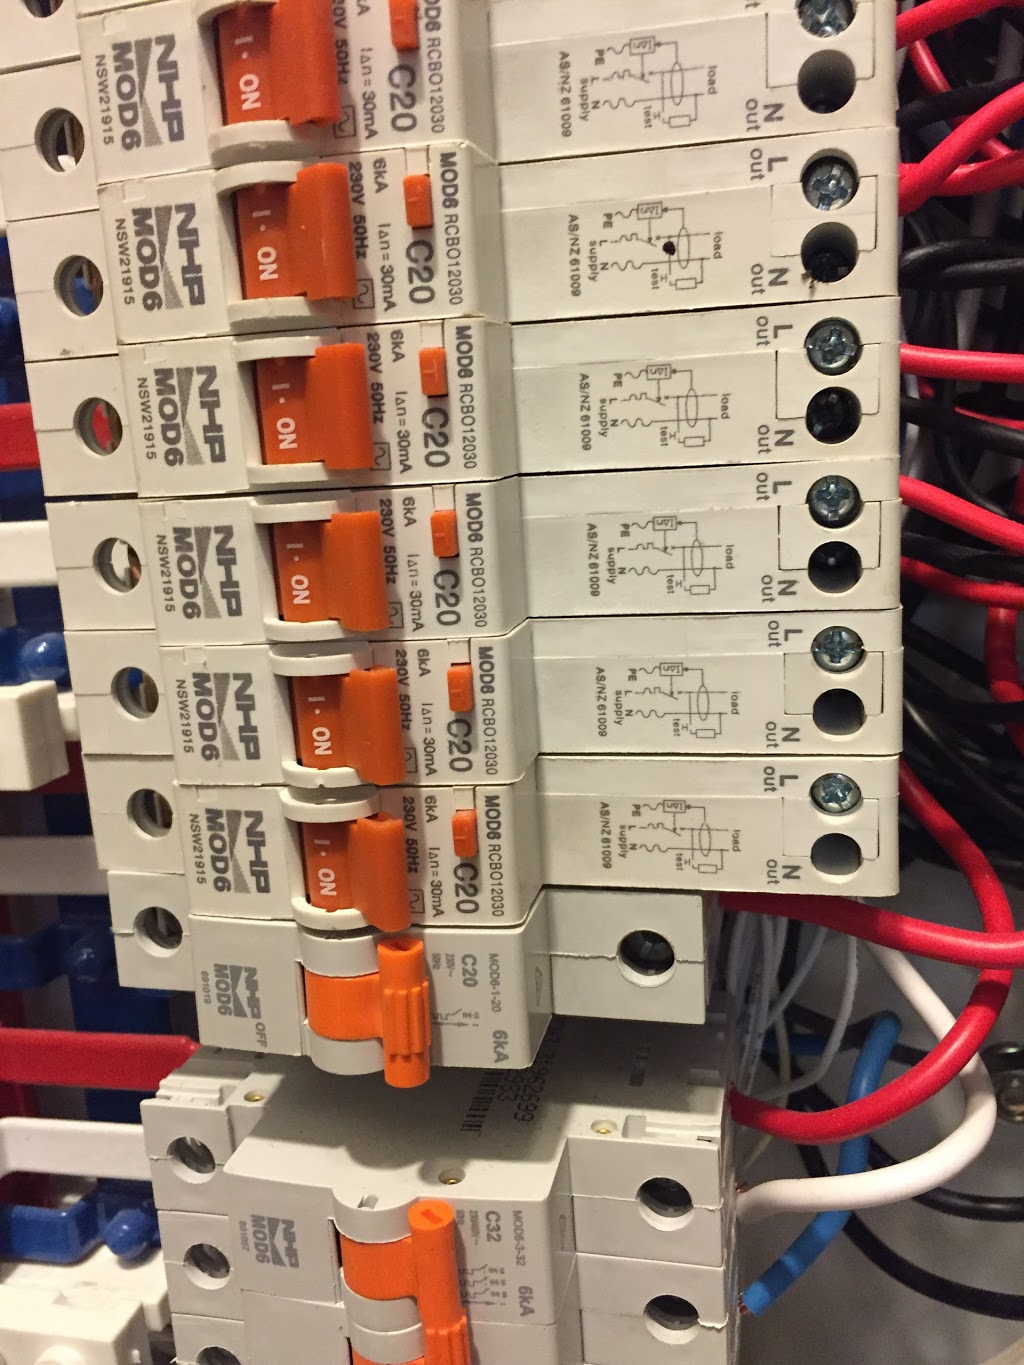 Repac Electrical | electrician | 16 Grasmere St, Mount St Thomas NSW 2500, Australia | 0401159220 OR +61 401 159 220